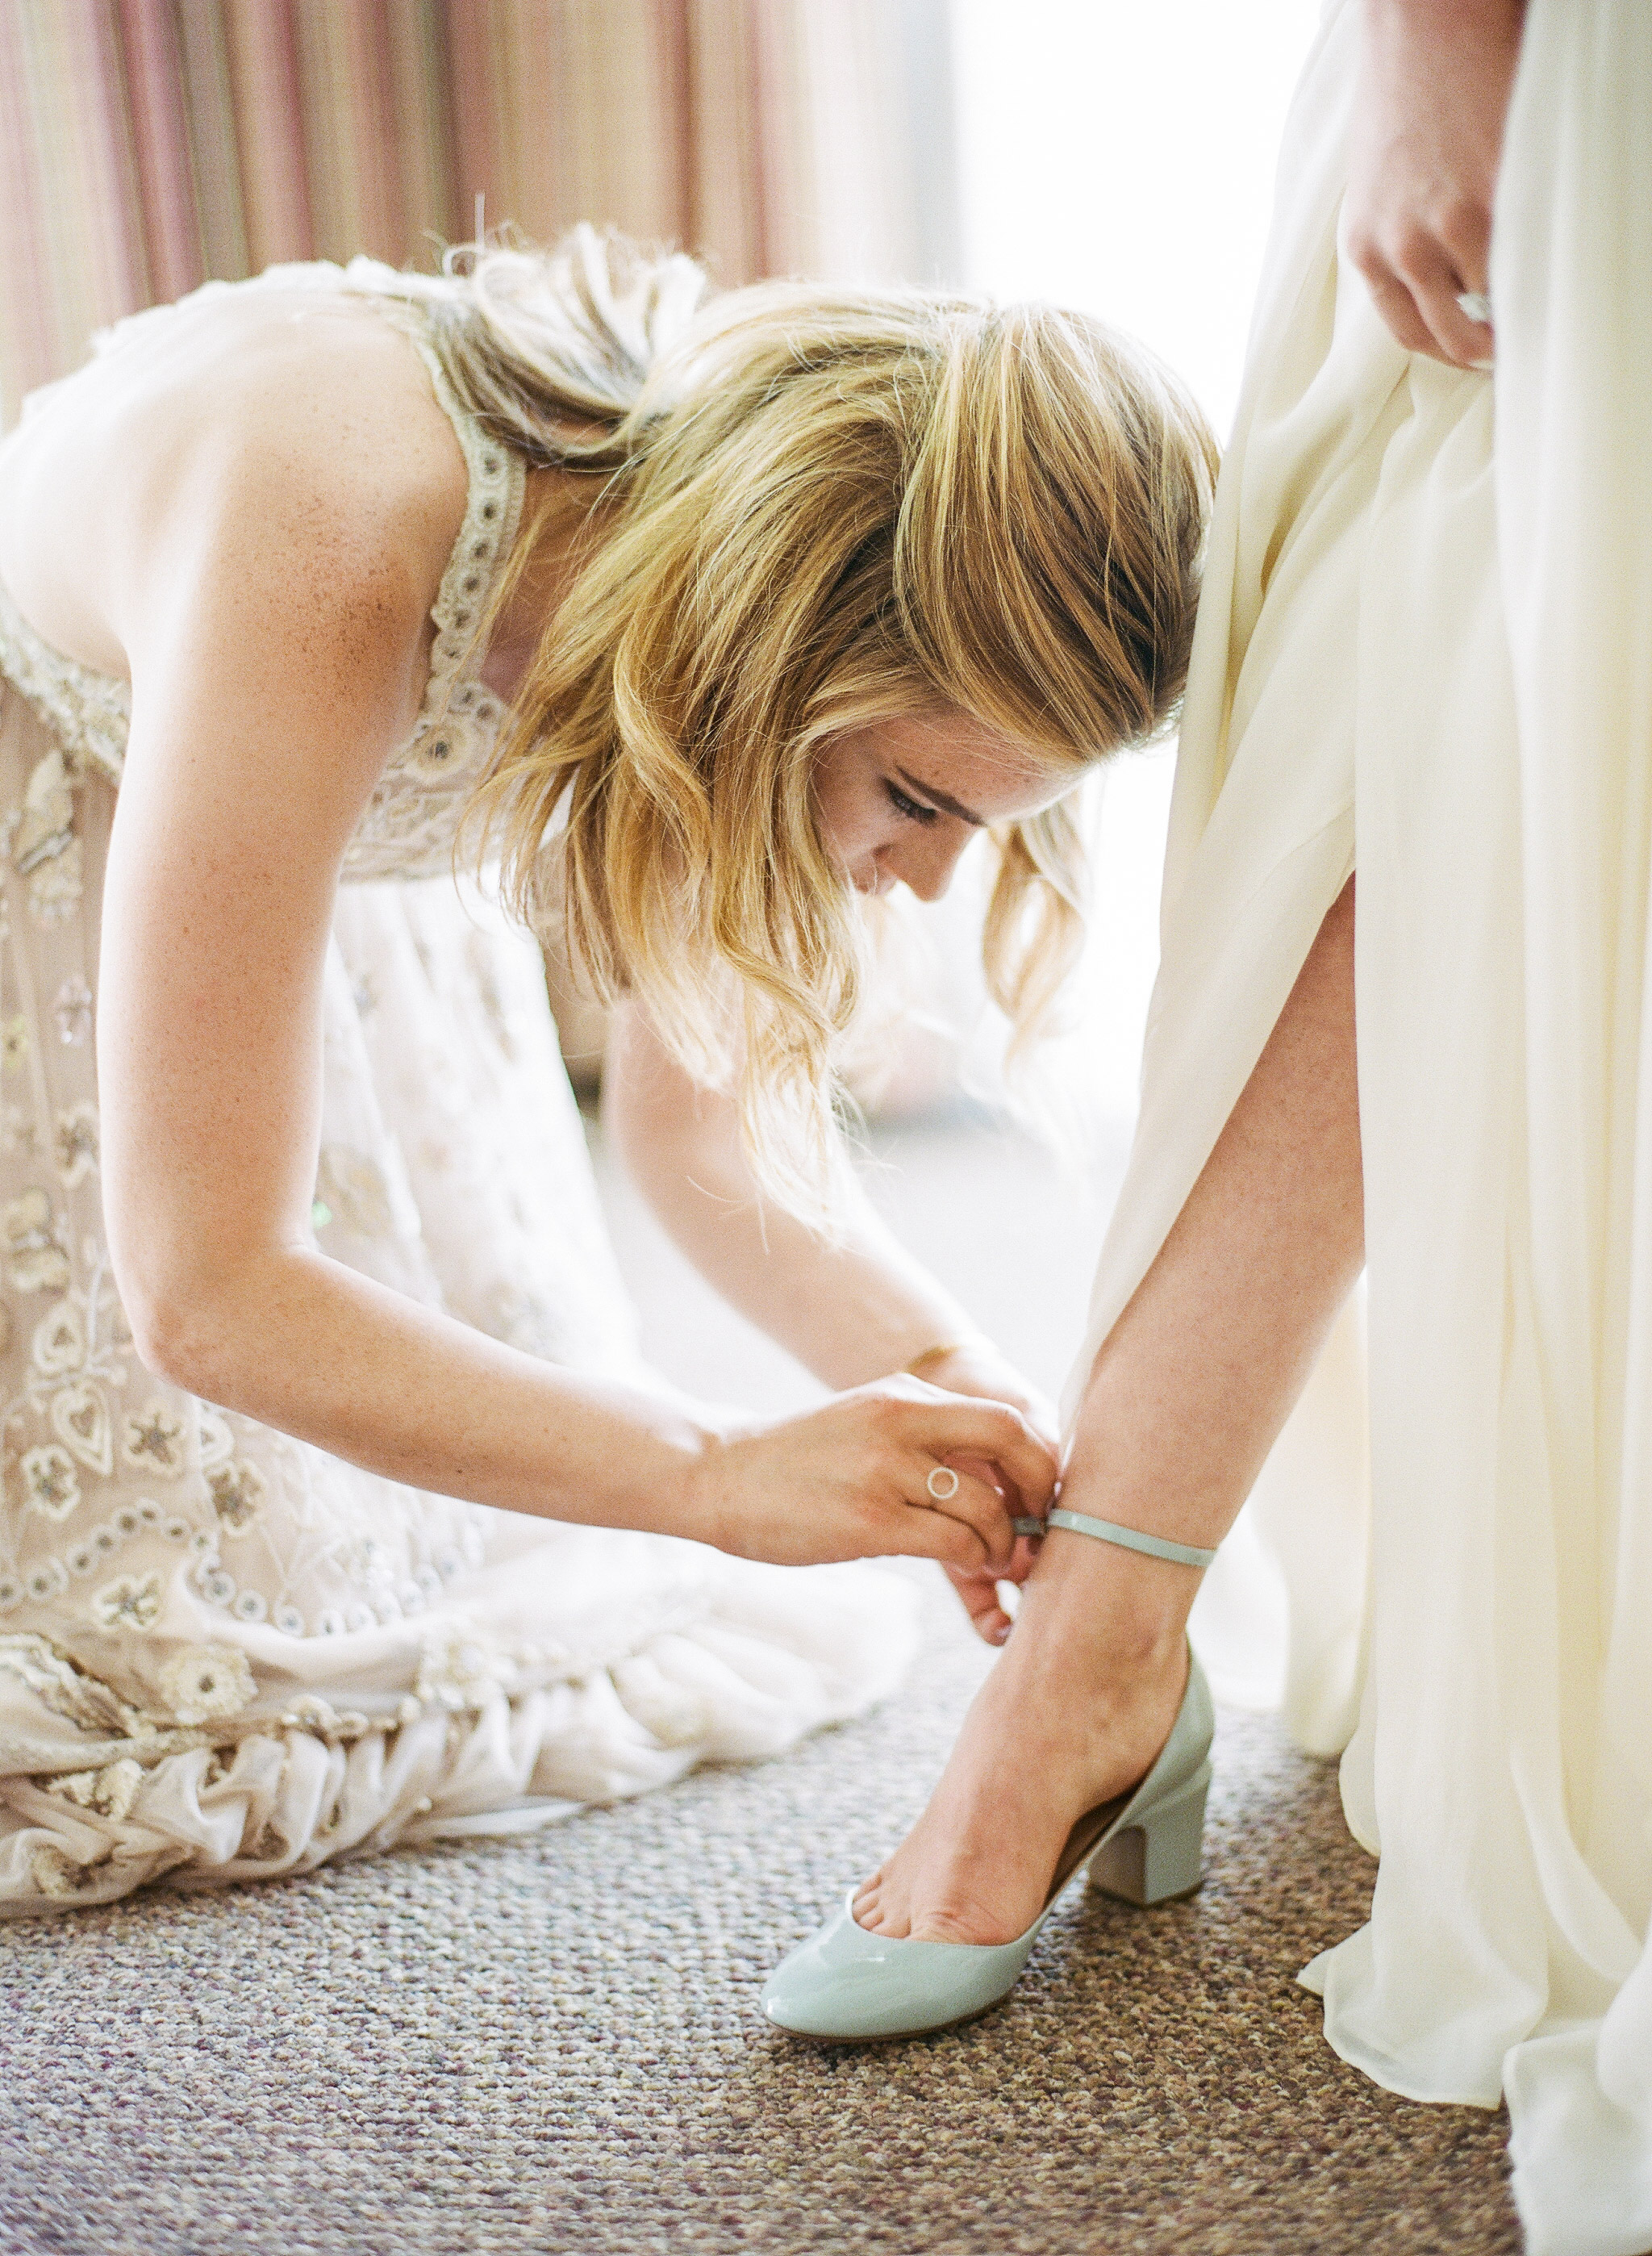 Should You Purchase Two Pairs Of Shoes For Your Wedding Day